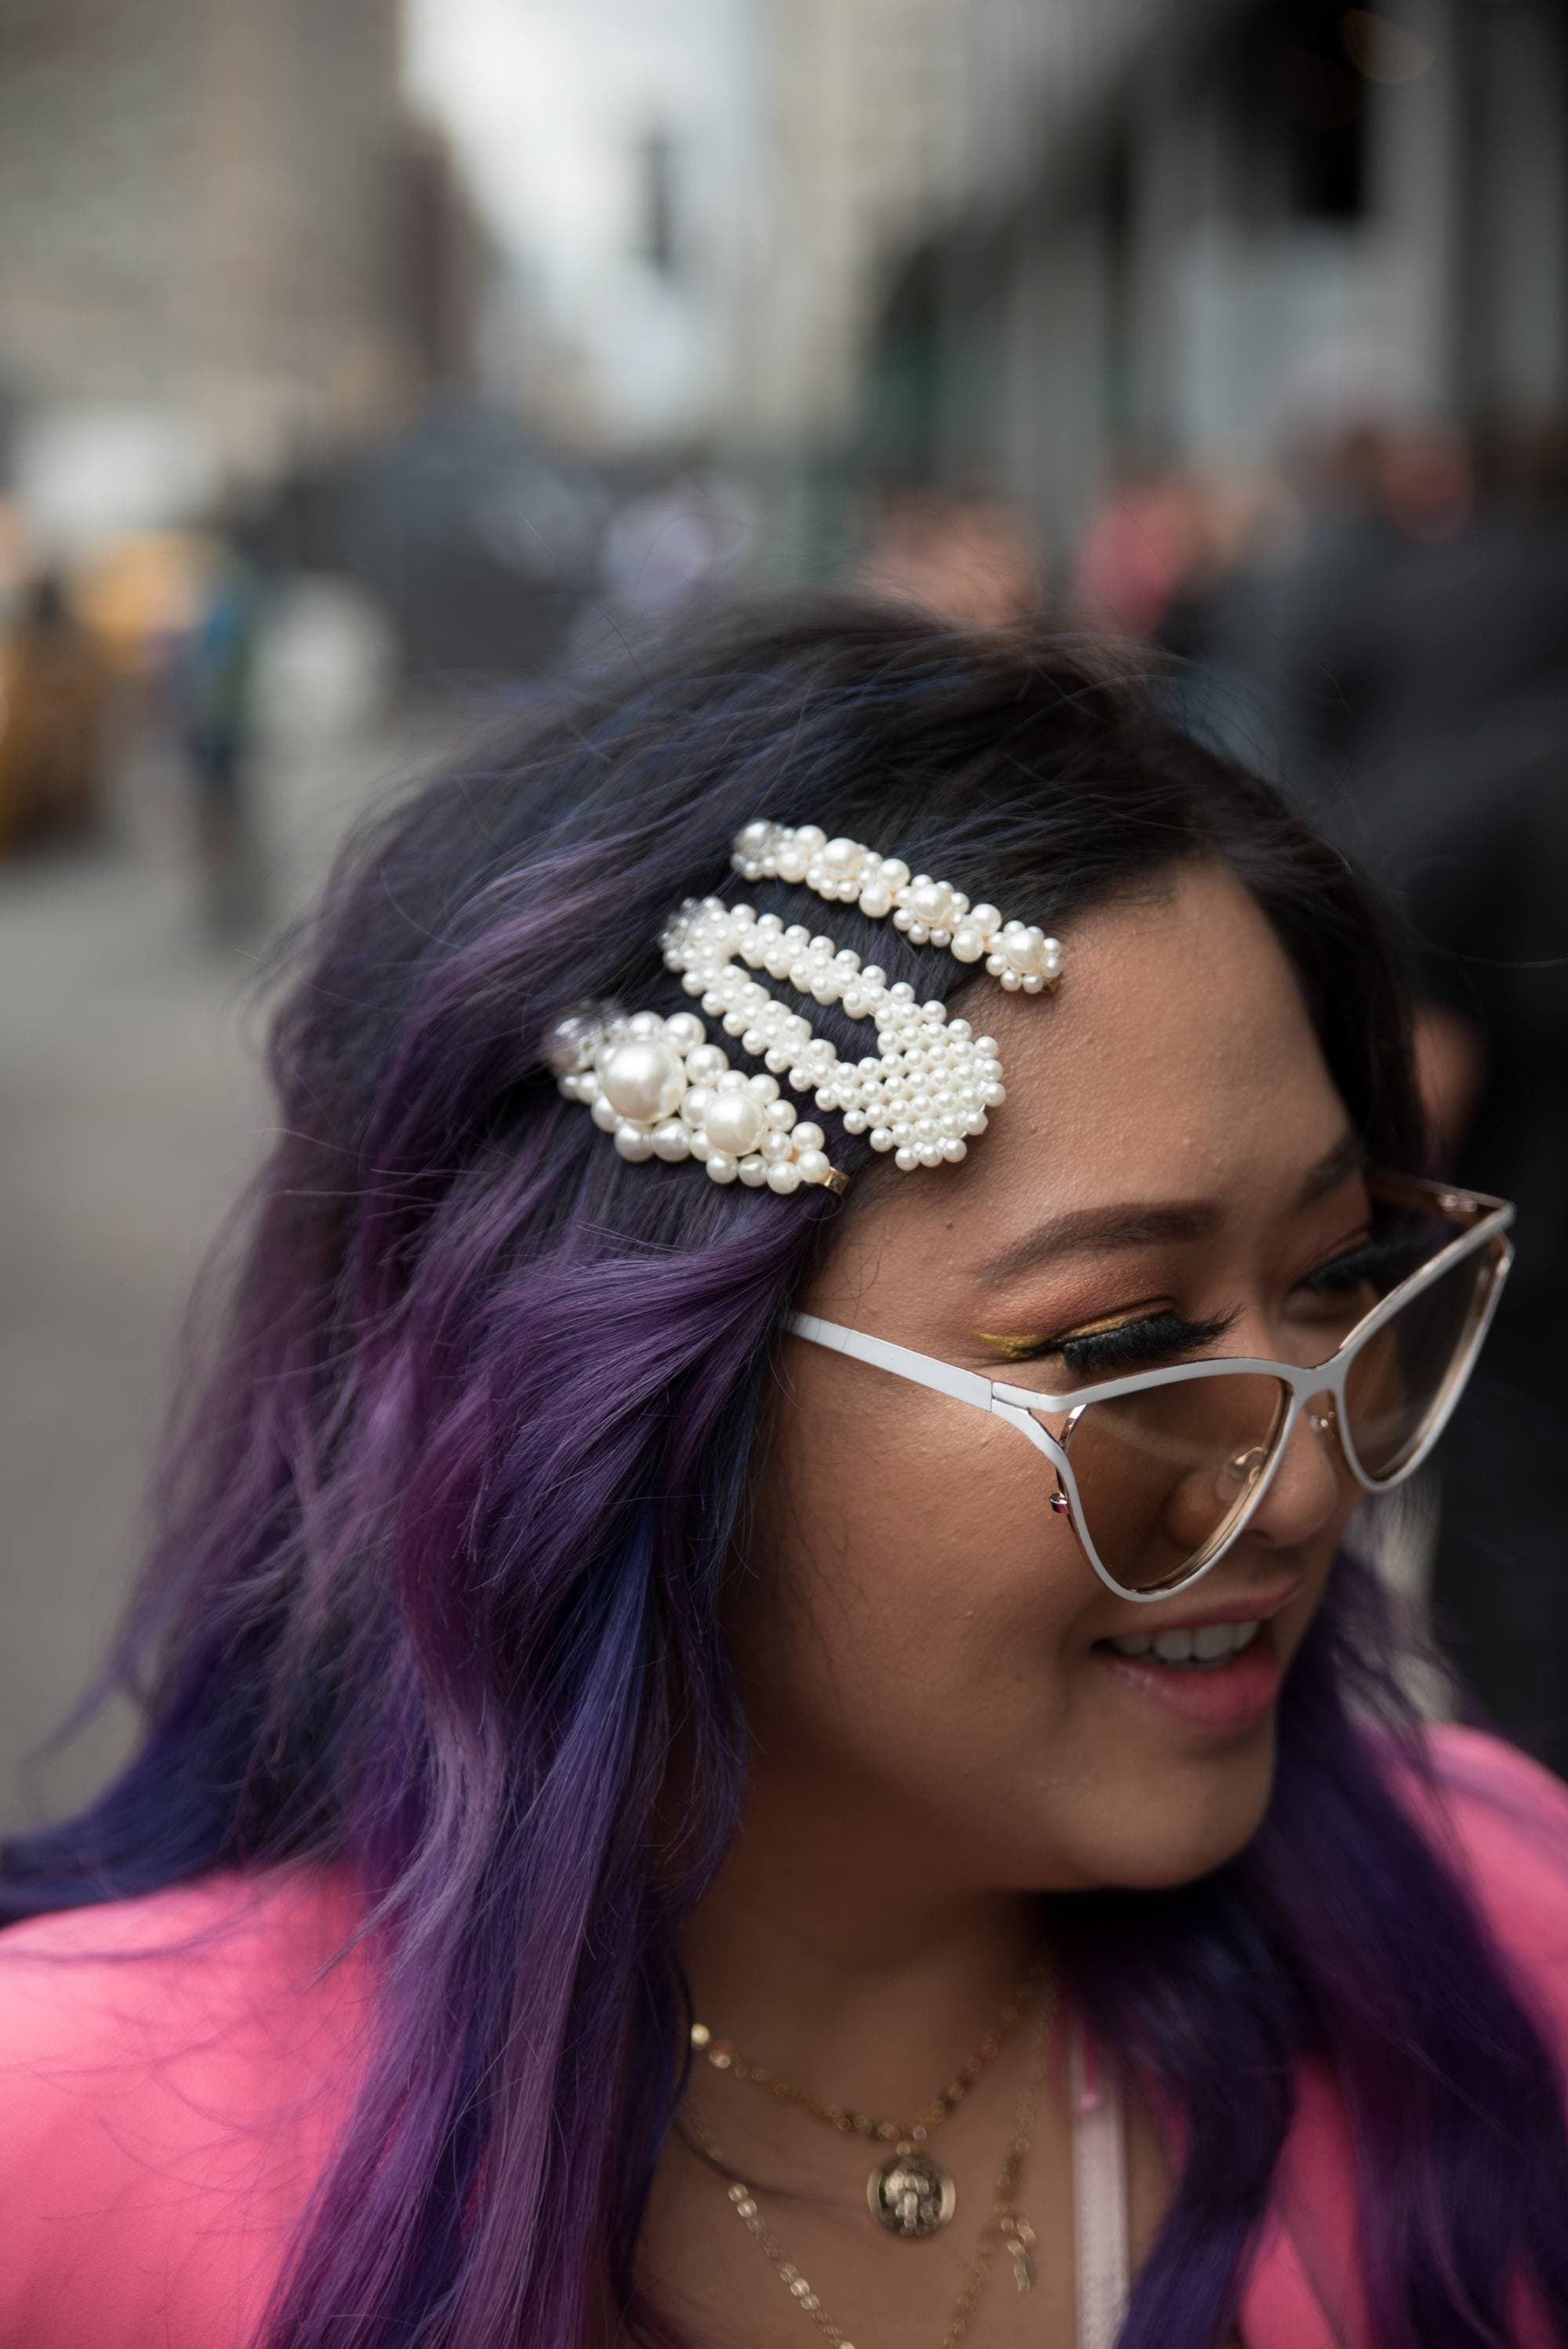 Asian woman with purple hair wearing white hair clips and sunglasses